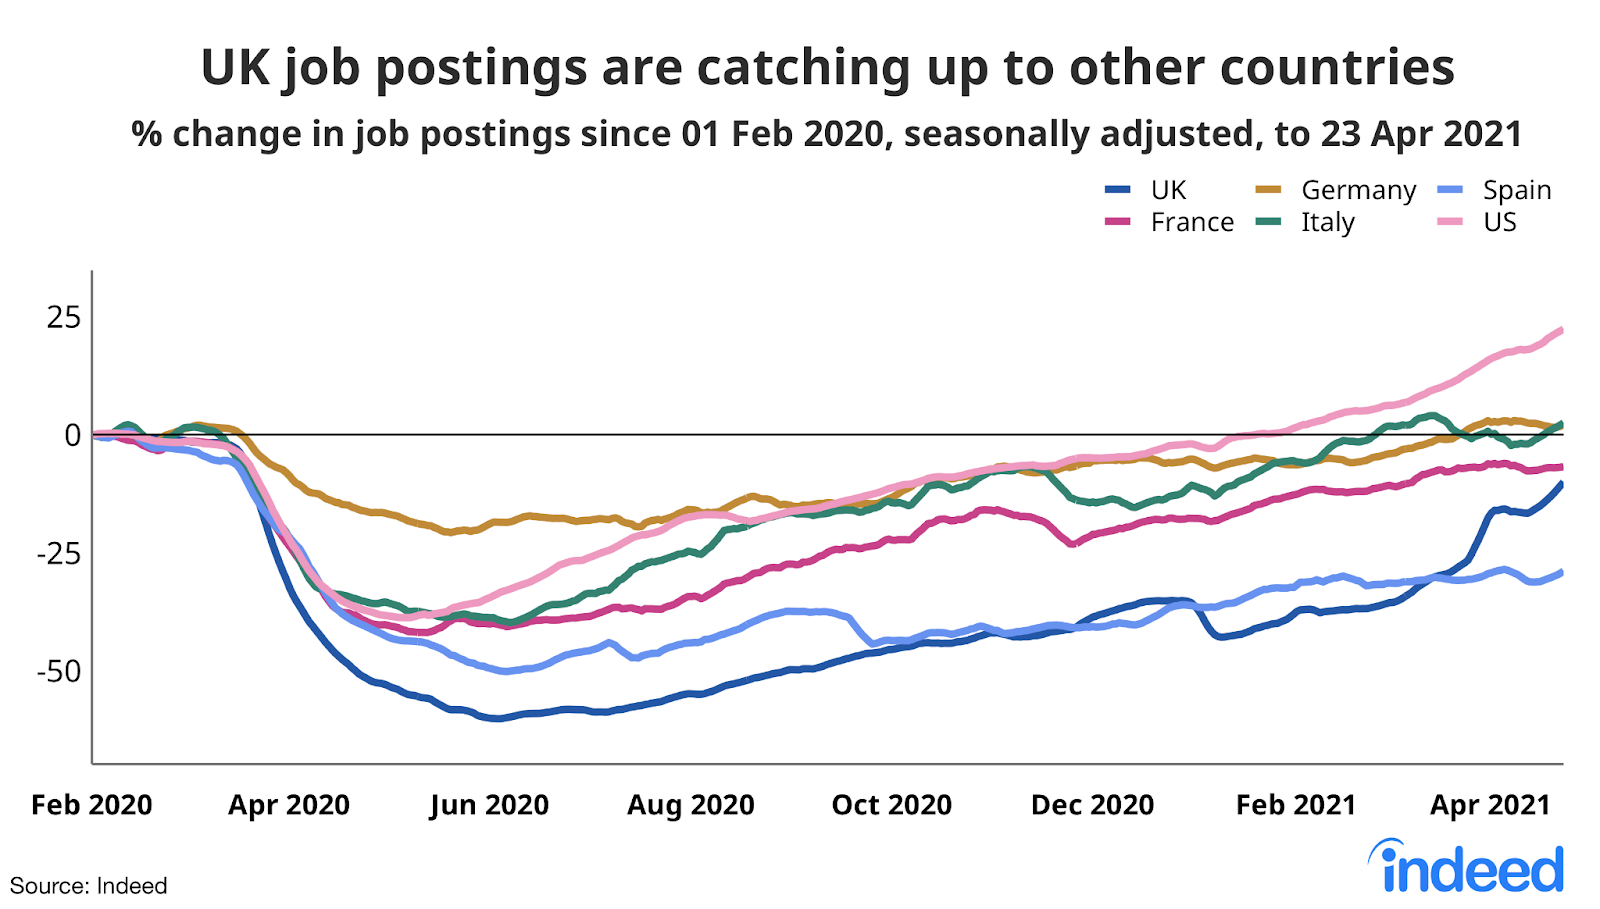 Line graph showing UK job postings are catching up to other countries